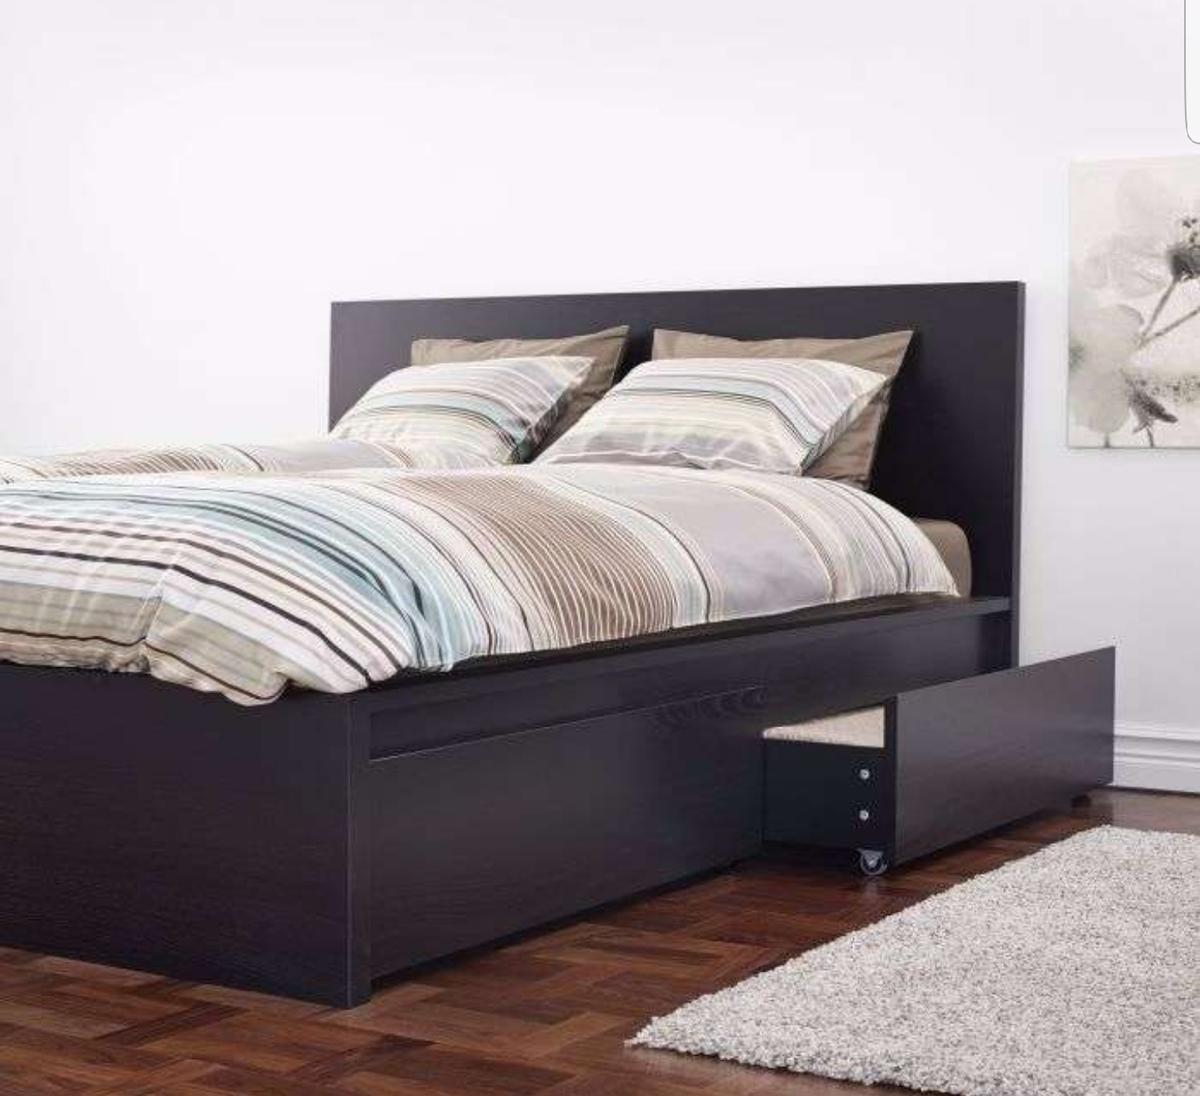 Ikea Malm Bett 160x200 Schwarzbraun In 5020 Rott For 150 00 For Sale Shpock